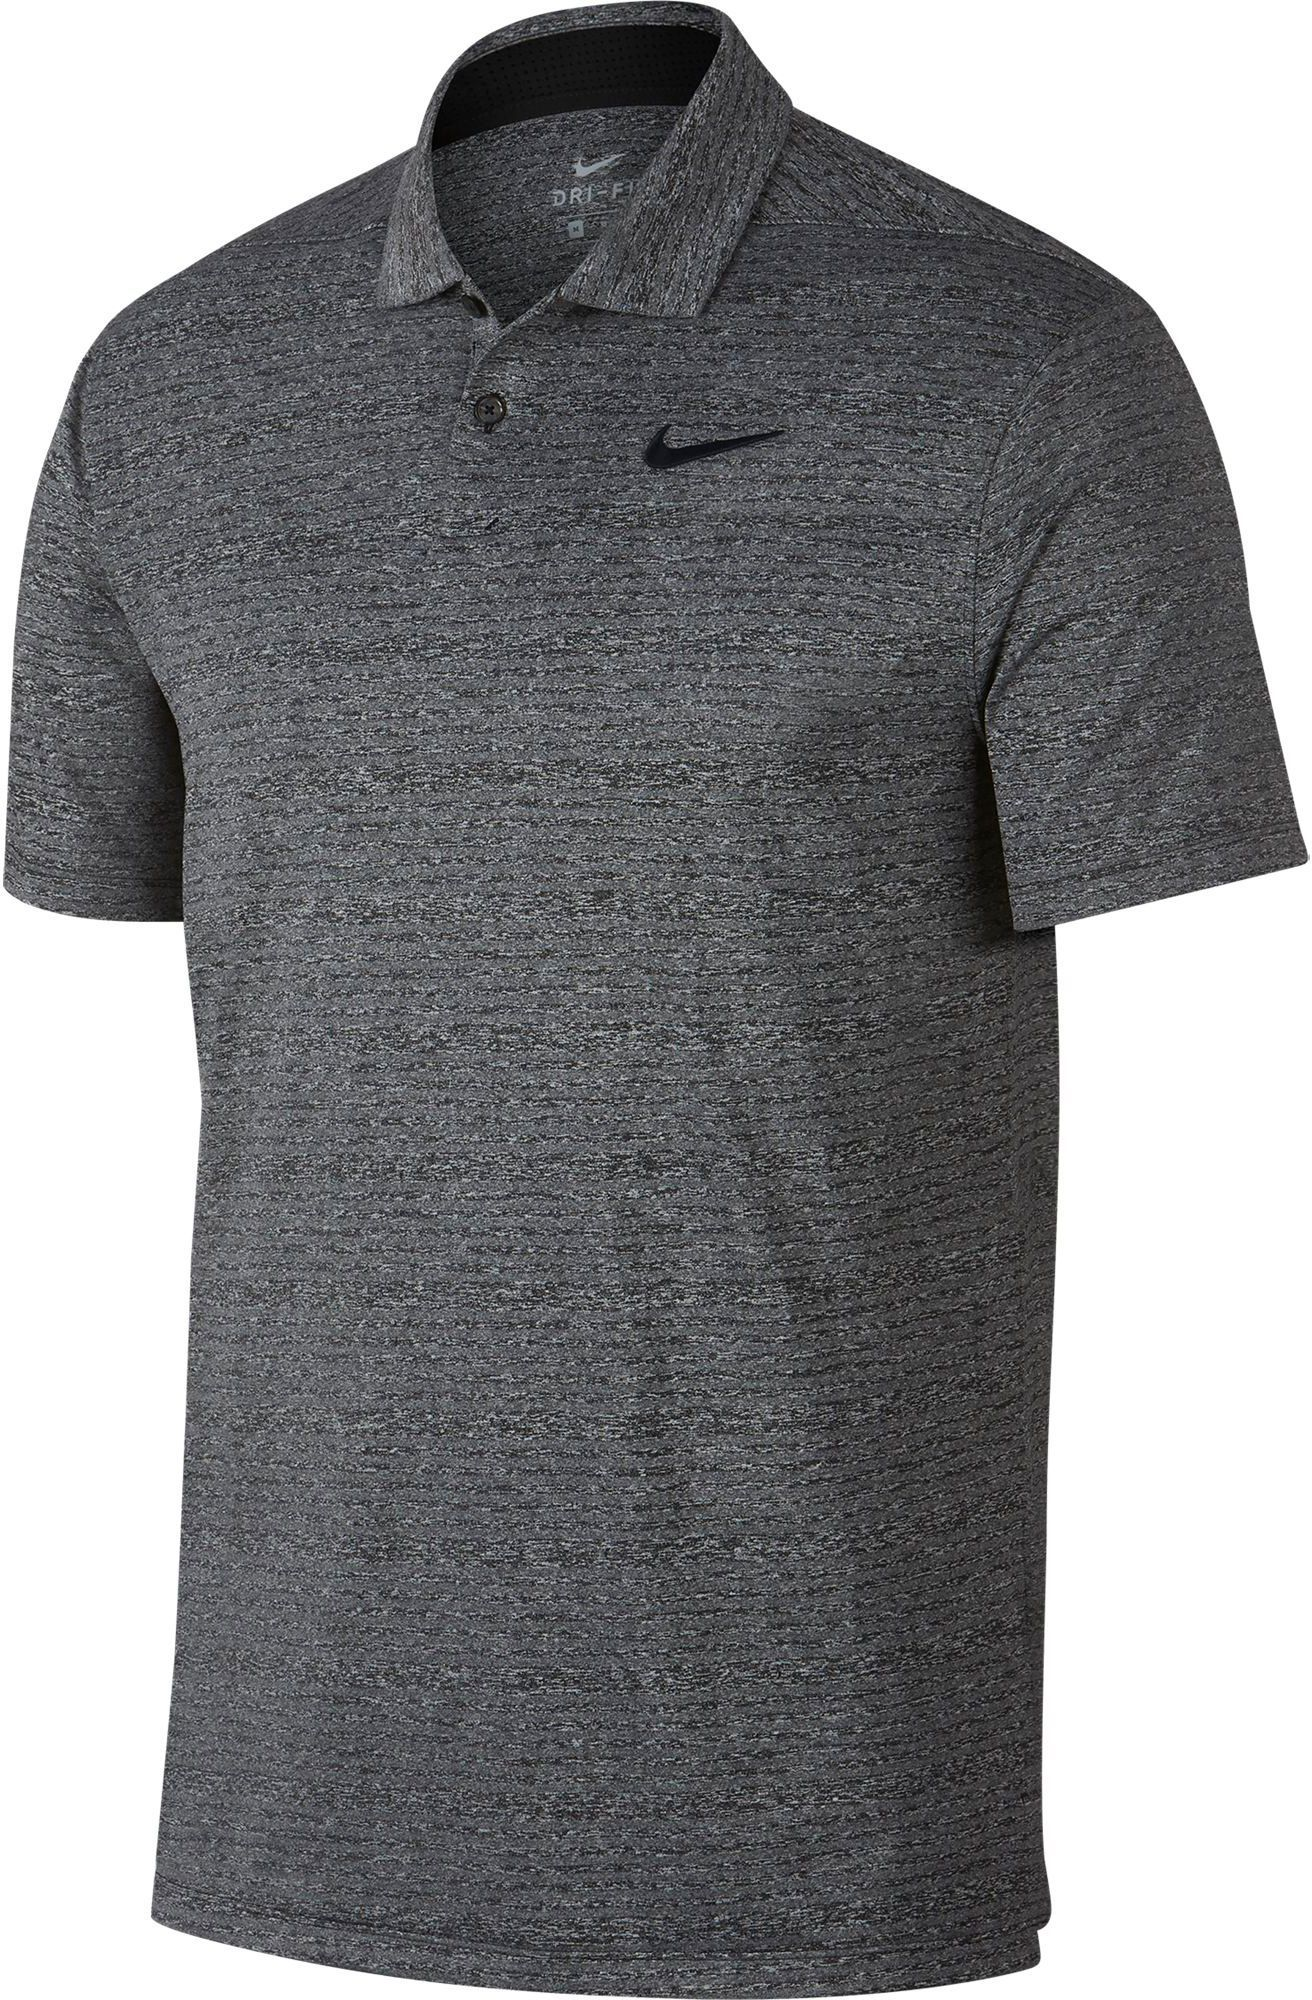 26399261aba31 Nike Men's Vapor Heather Golf Polo in 2019 | Products | Golf fashion ...